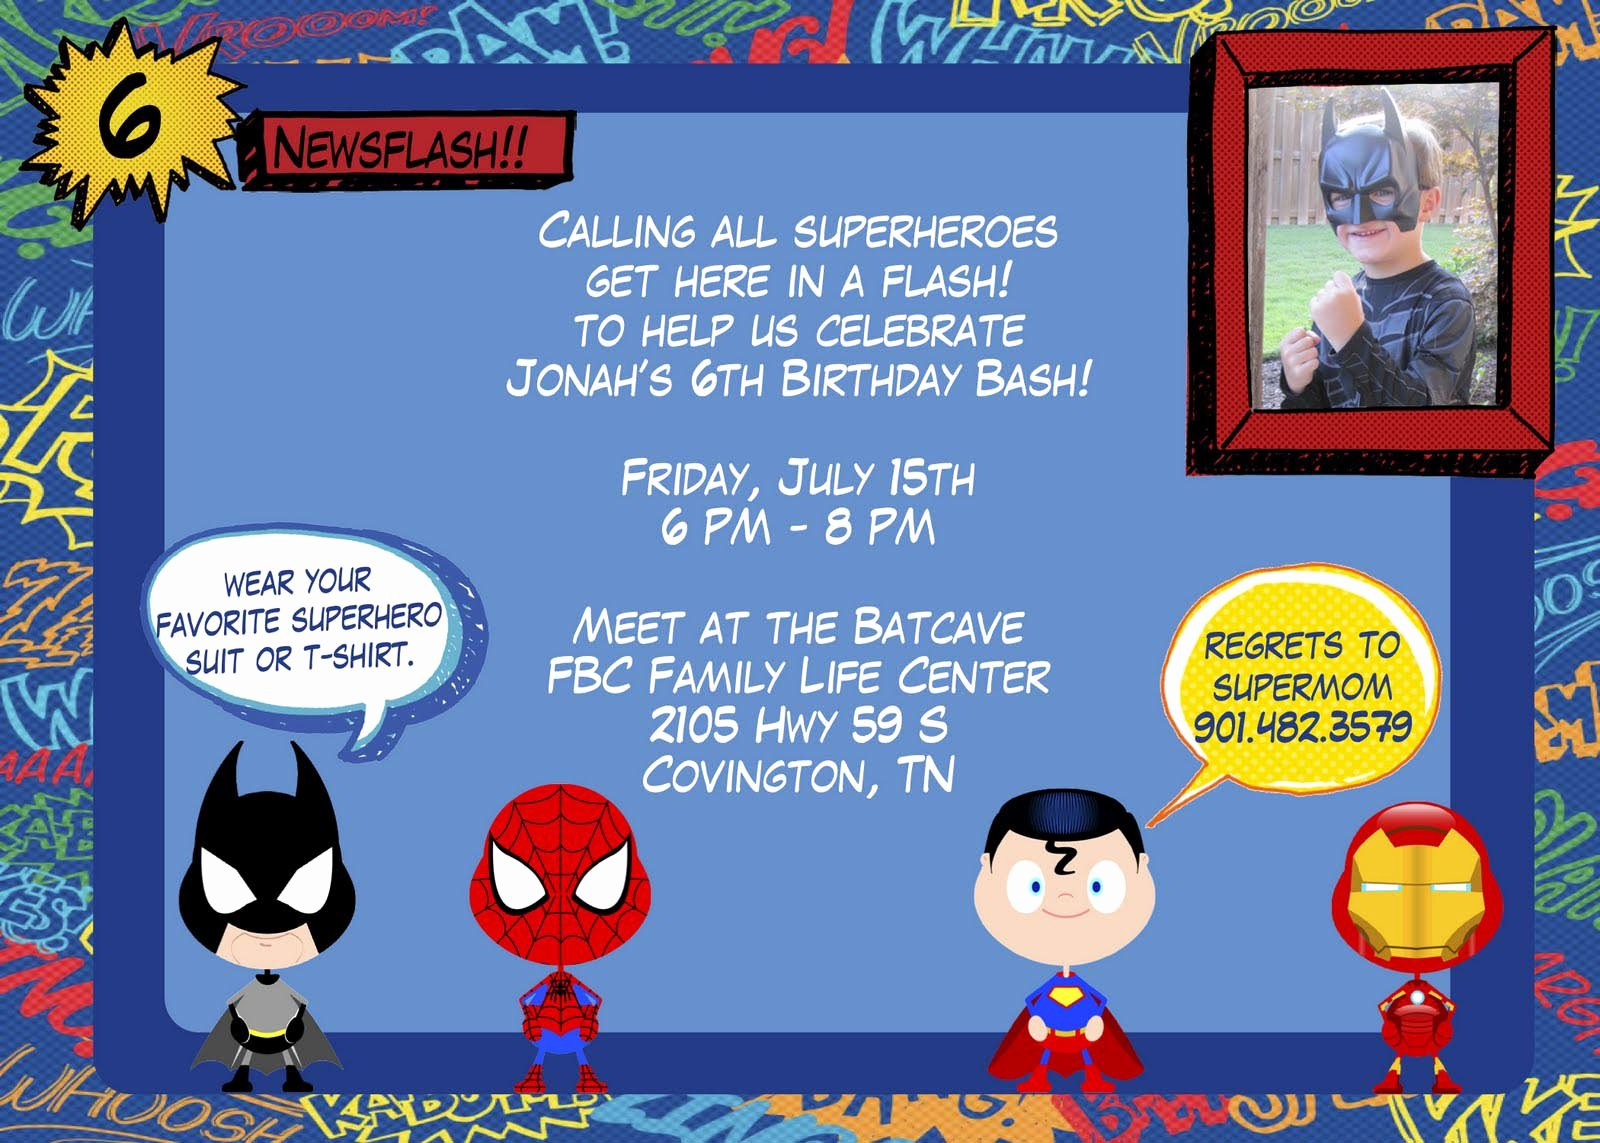 Superhero Invitation Template Free Luxury How to Arrange A Superhero Birthday Party